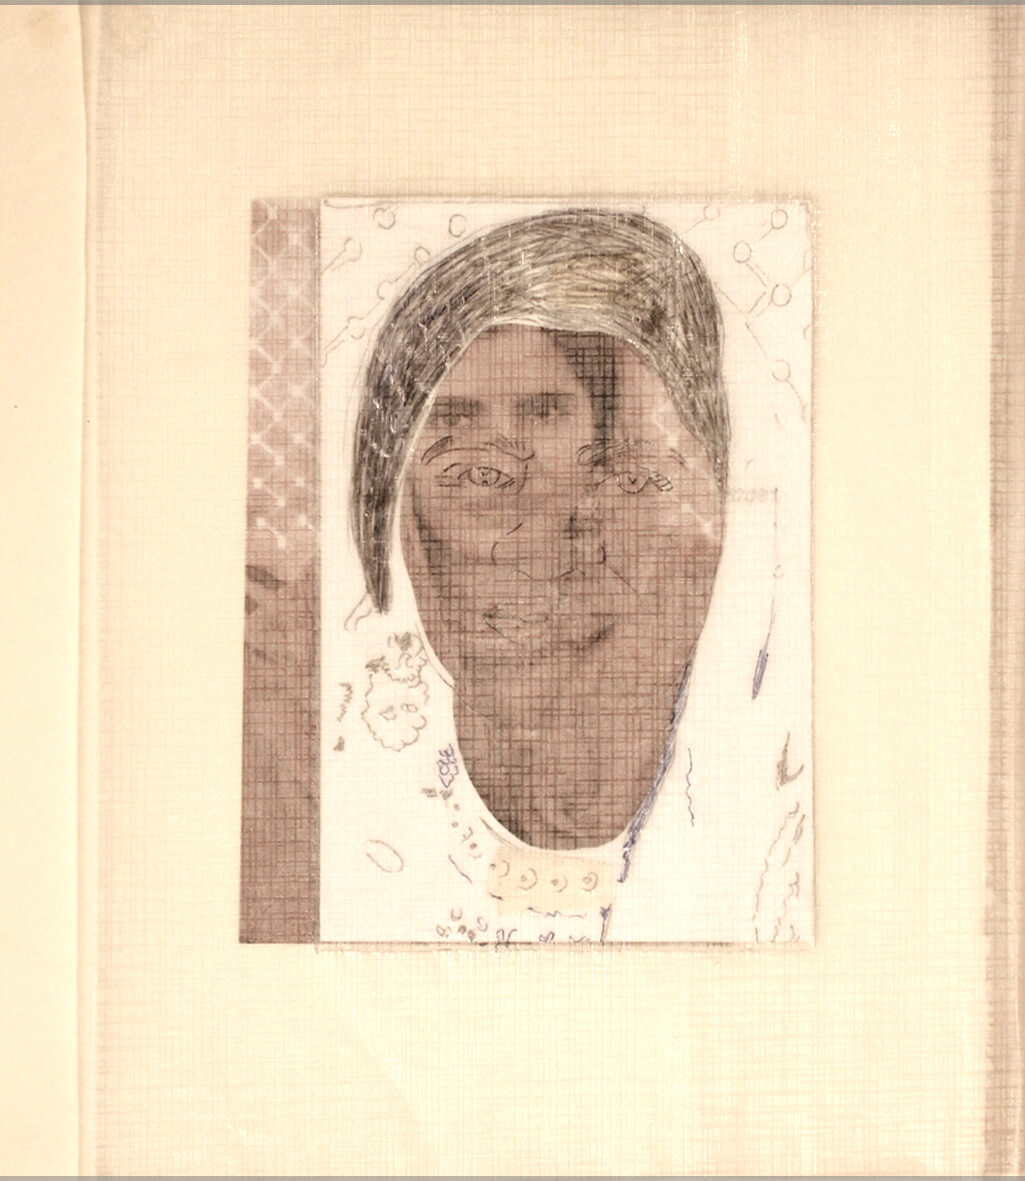 Ayesha, 2012, photo prints and blue pen on a album page, 26 x 21 cm